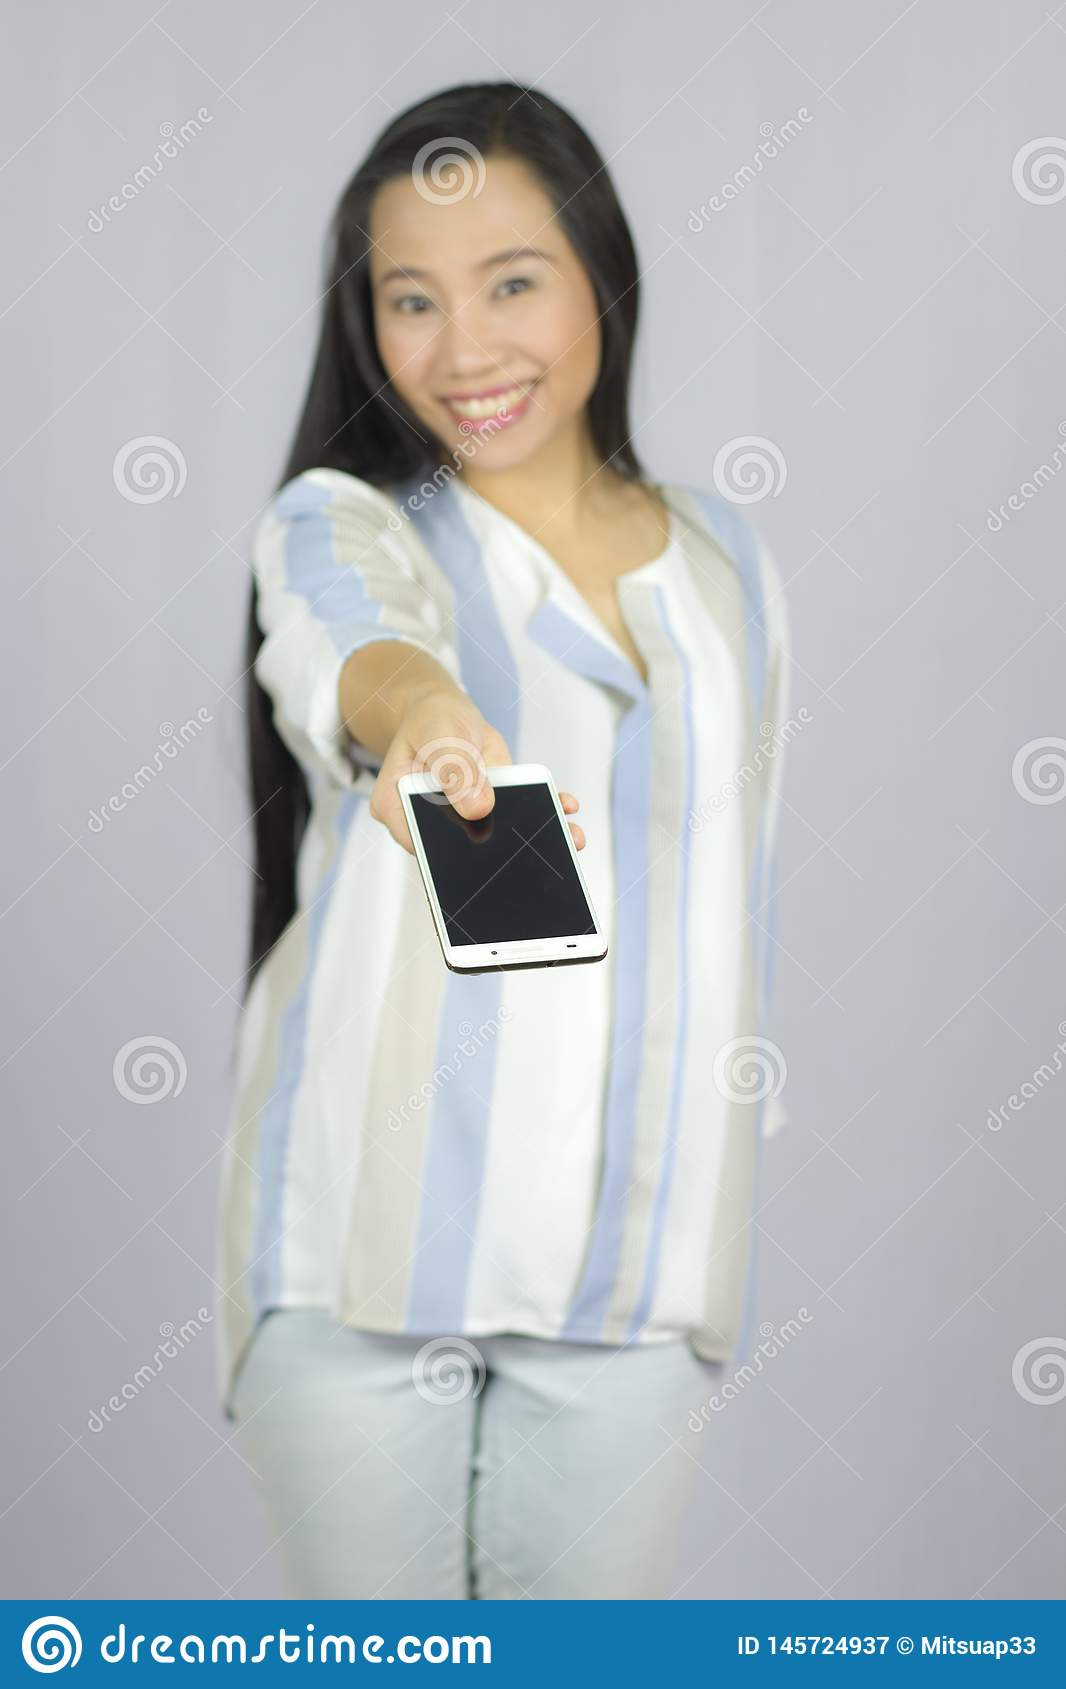 Smiling women holding mobile phone, give a smart phone to you. isolated on gray background